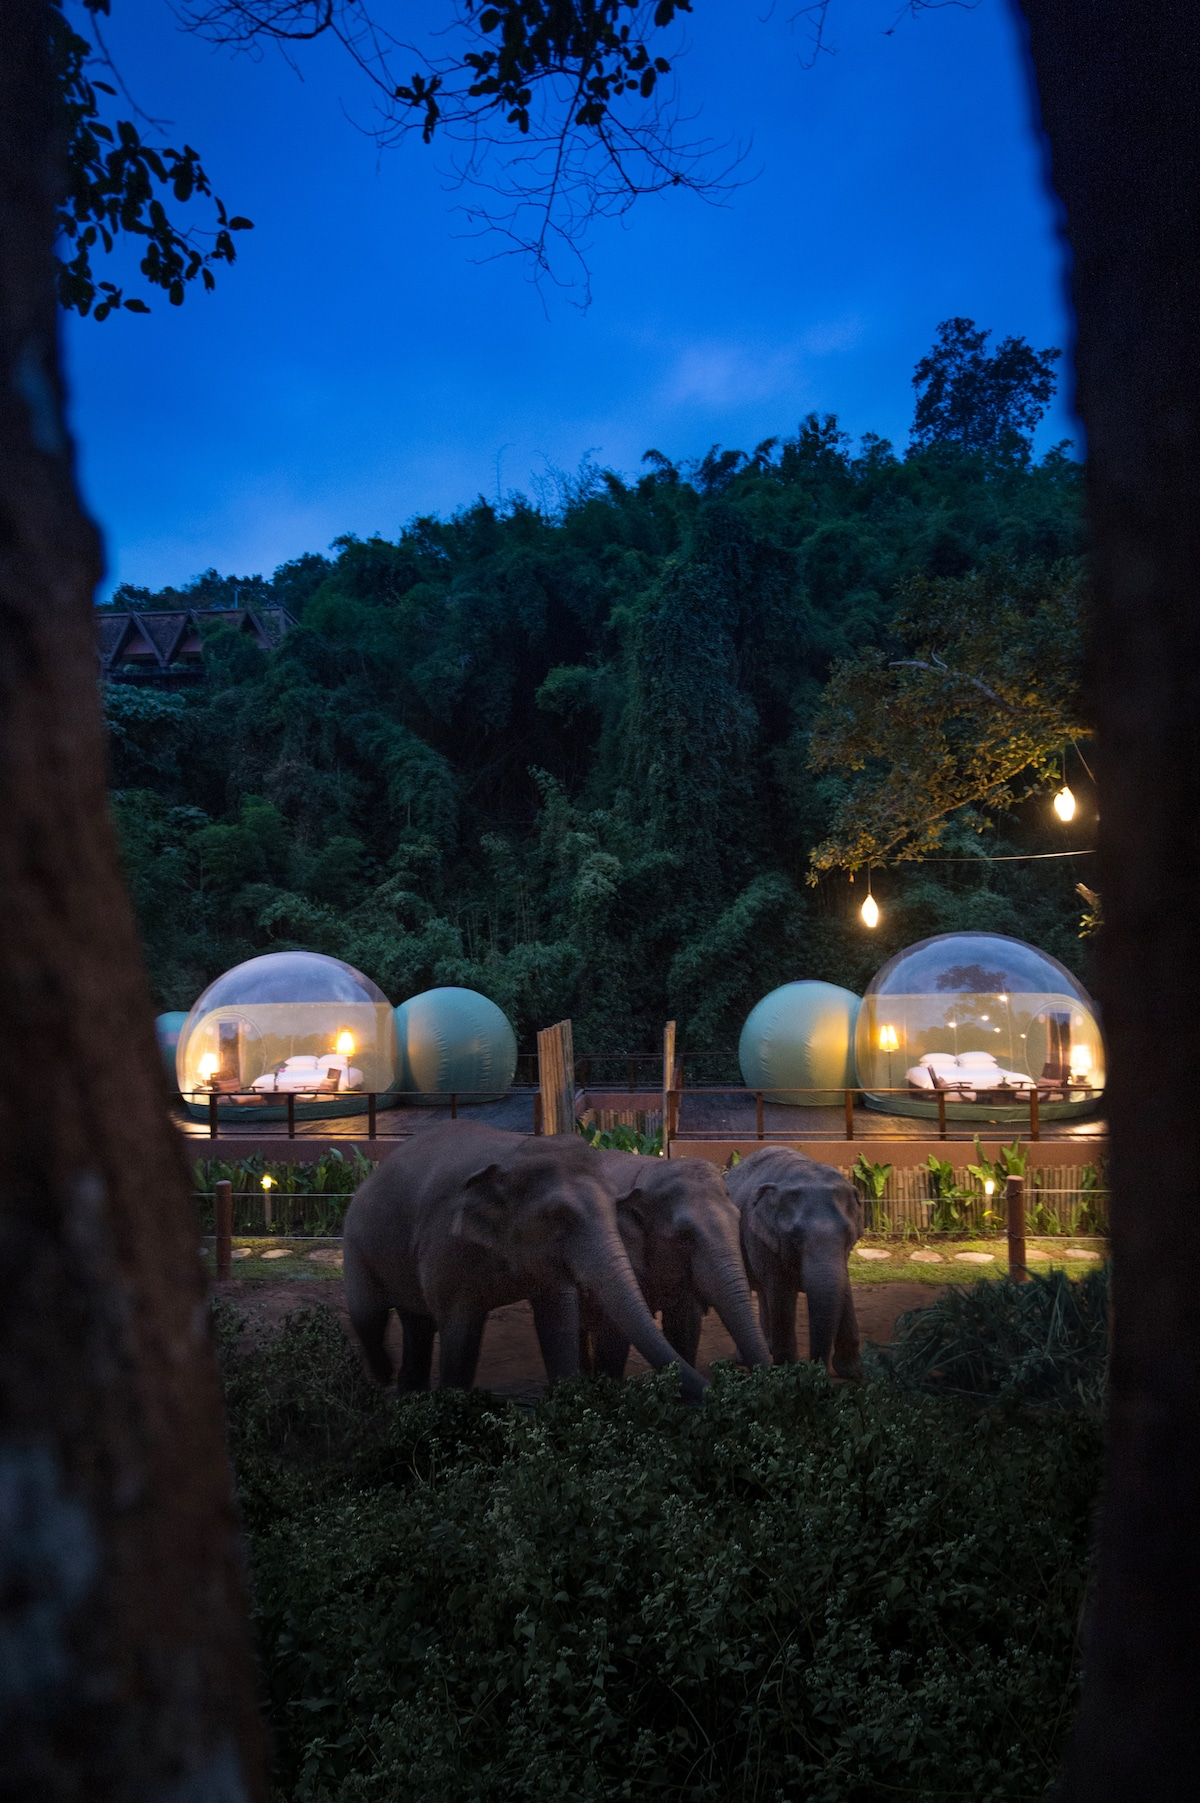 Sleeping with Elephants in Thailand